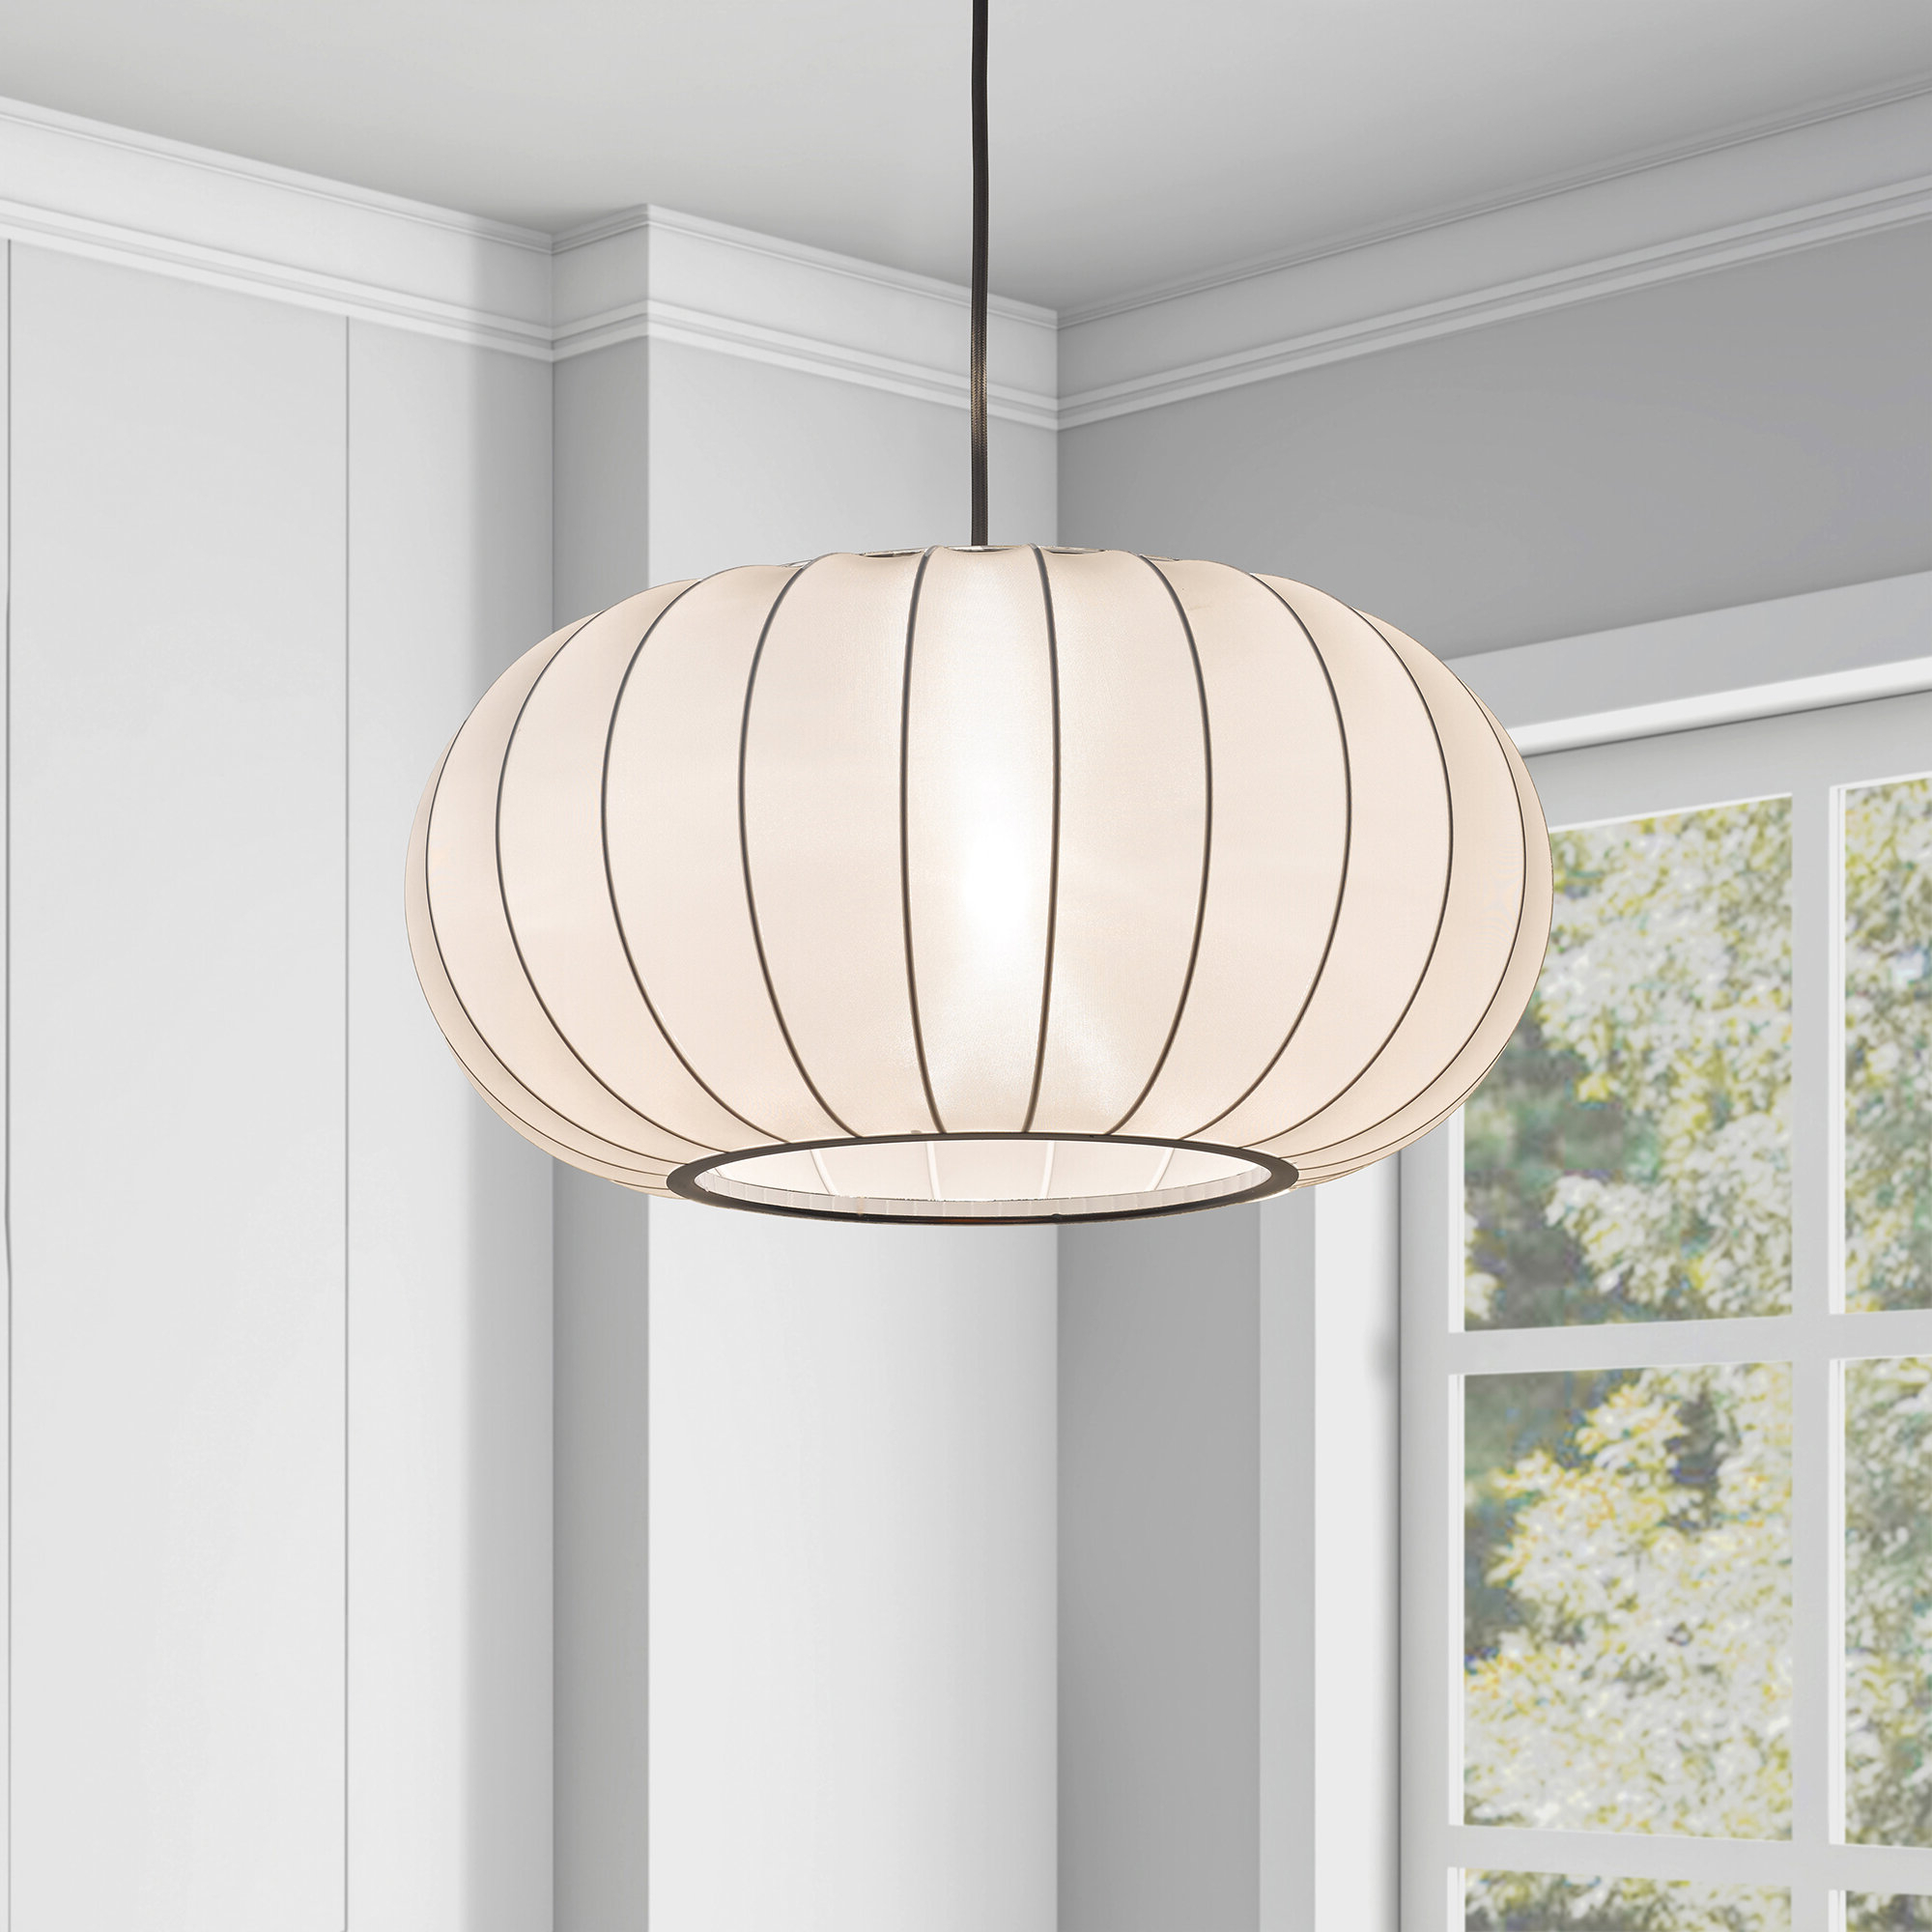 Langley Street Alfredo 3 Light Geometric Chandelier With Favorite Melora 1 Light Single Geometric Pendants (View 19 of 20)